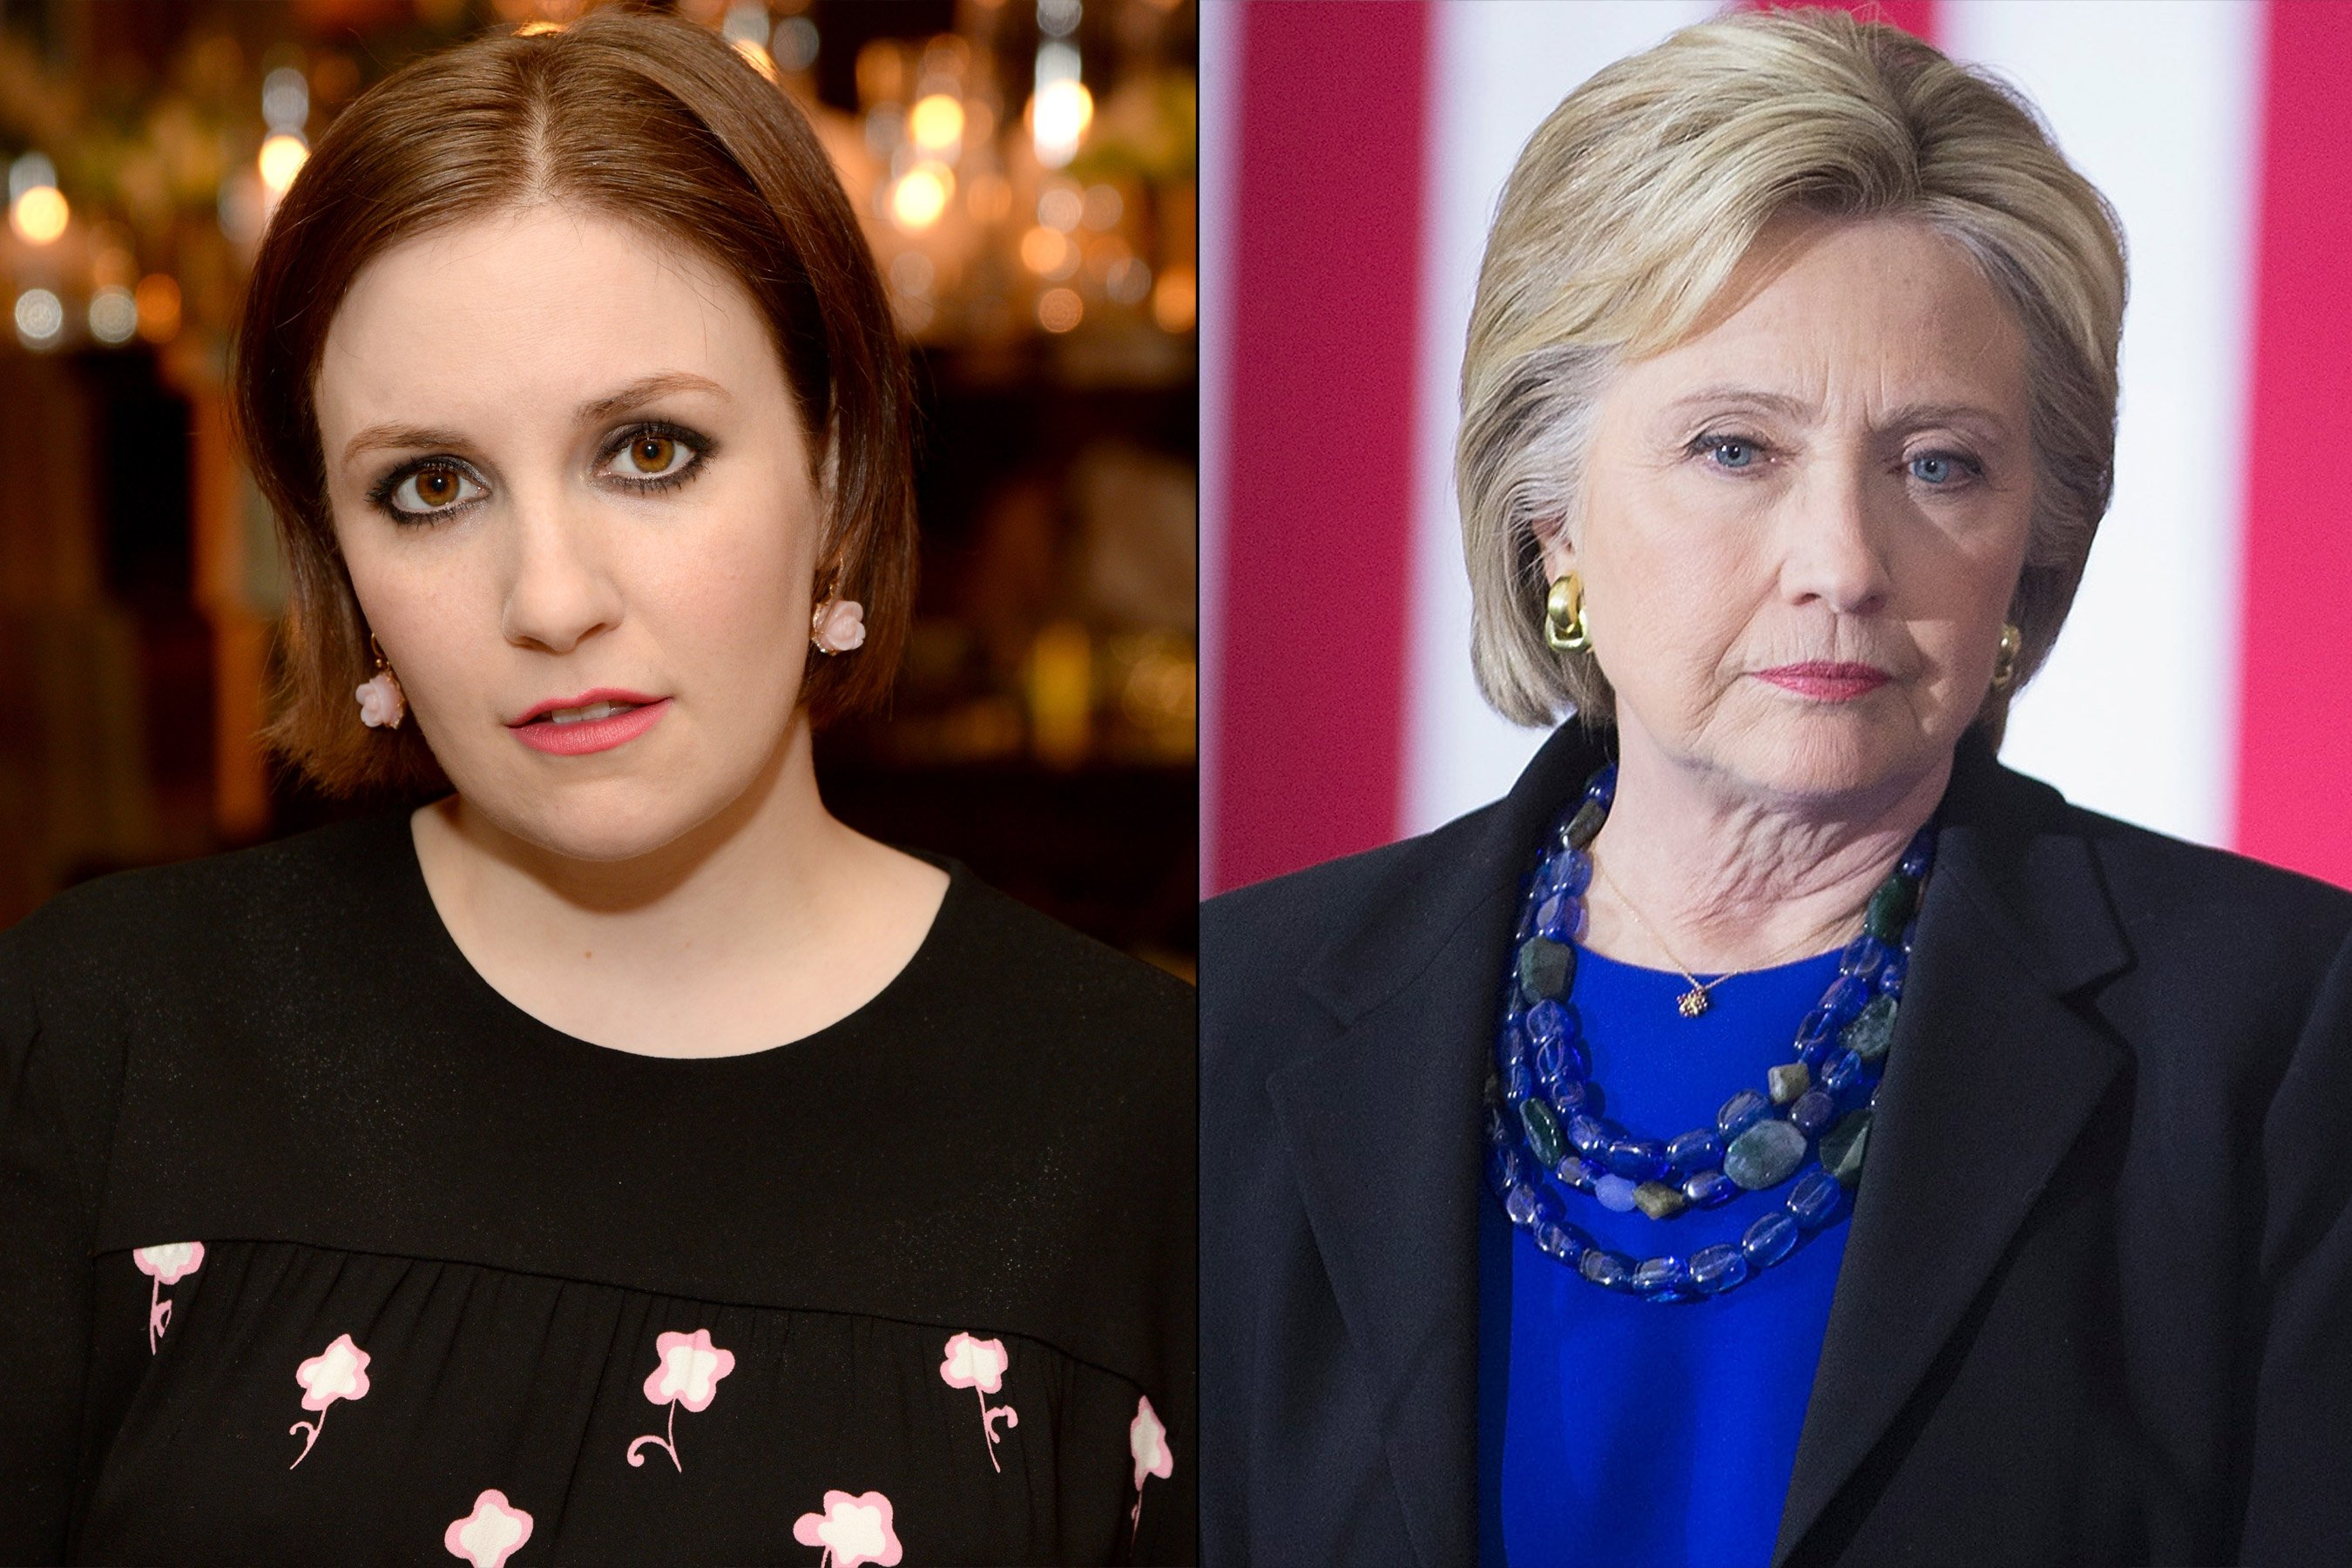 7e85b9f235d660 Harvey Weinstein: Lena Dunham claims she warned Clinton campaign about  producer's alleged behavior